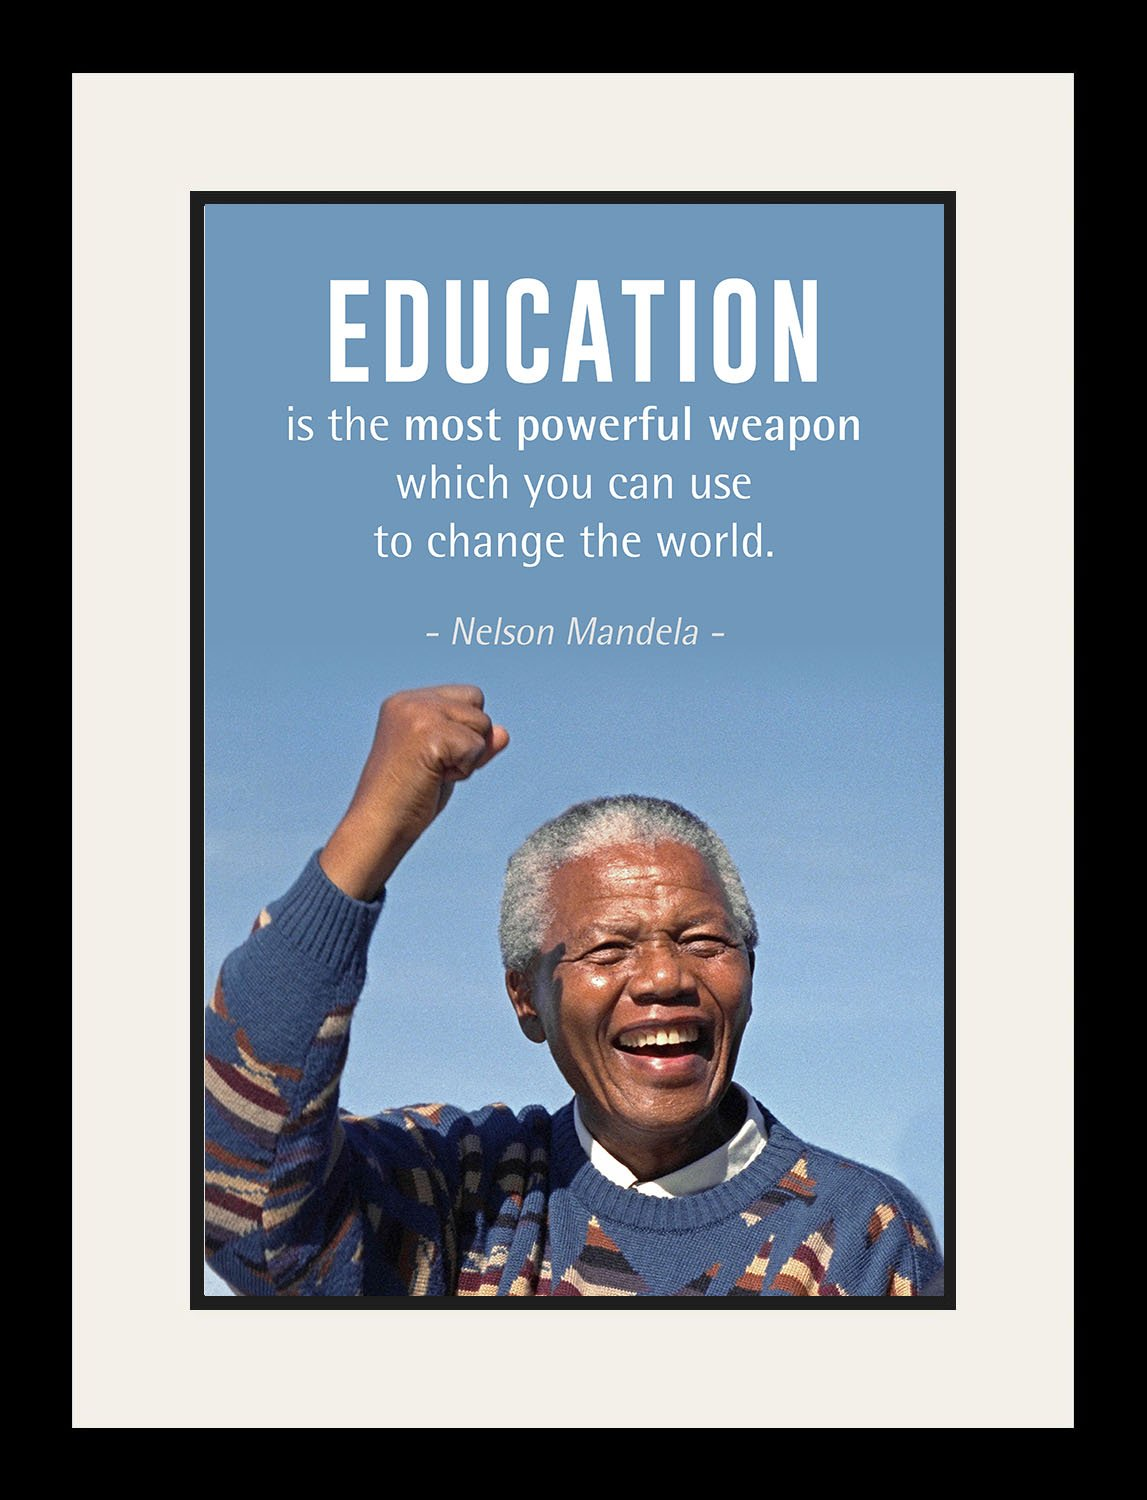 Nelson Mandela Quote ''Education is the most powerful weapon'' | Motivational Poster, Print, Picture or Framed Wall Art Decor - Inspirational Quotes Collection - Christmas Gifts (19x25 Framed)